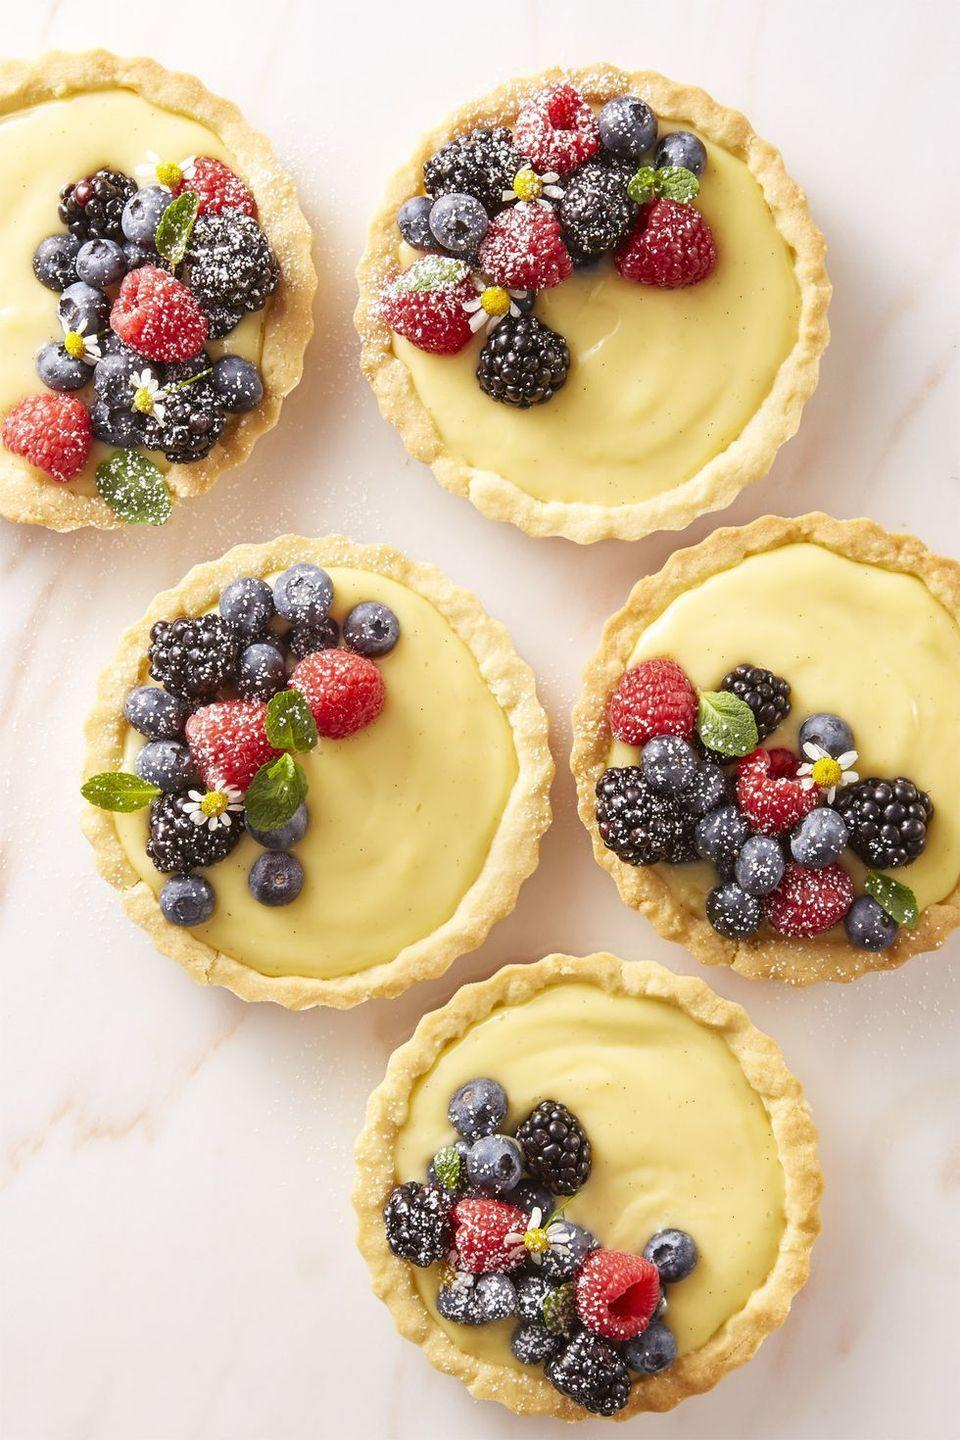 """<p>Dress up mini pies with red and blue berries fit for the occasion.</p><p><strong><em>Get the recipe from <a href=""""https://www.goodhousekeeping.com/food-recipes/dessert/a43667/very-berry-cream-tartlets-recipe/"""" rel=""""nofollow noopener"""" target=""""_blank"""" data-ylk=""""slk:Good Housekeeping"""" class=""""link rapid-noclick-resp"""">Good Housekeeping</a>.</em></strong></p>"""